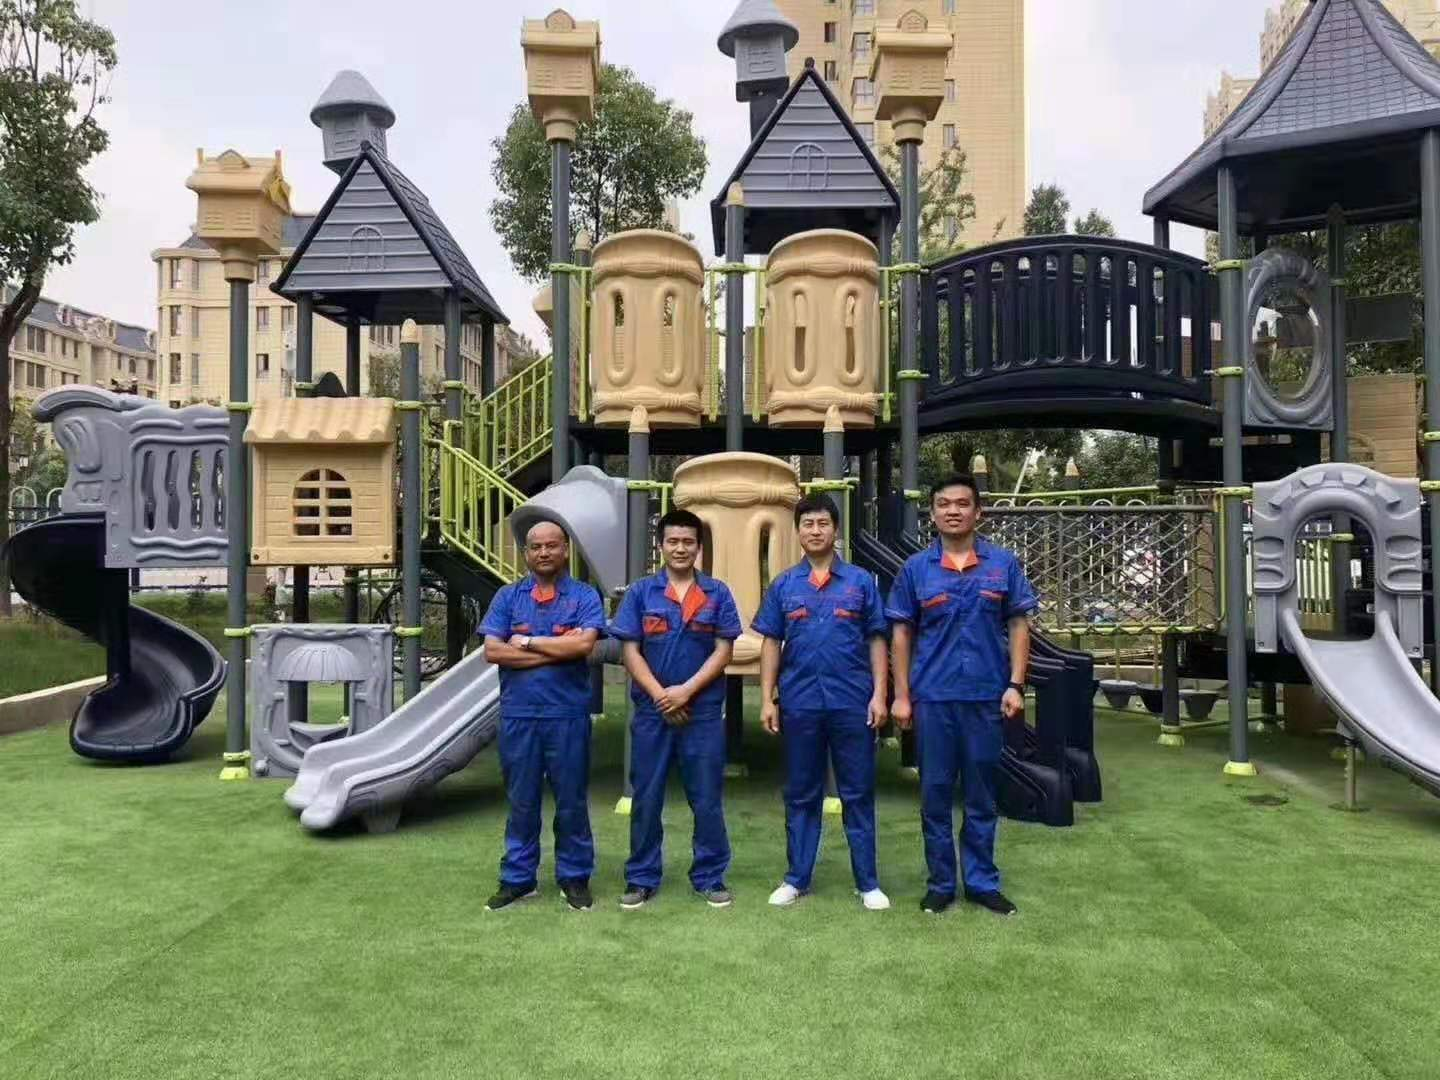 how to make the outdoor playground with more fun?